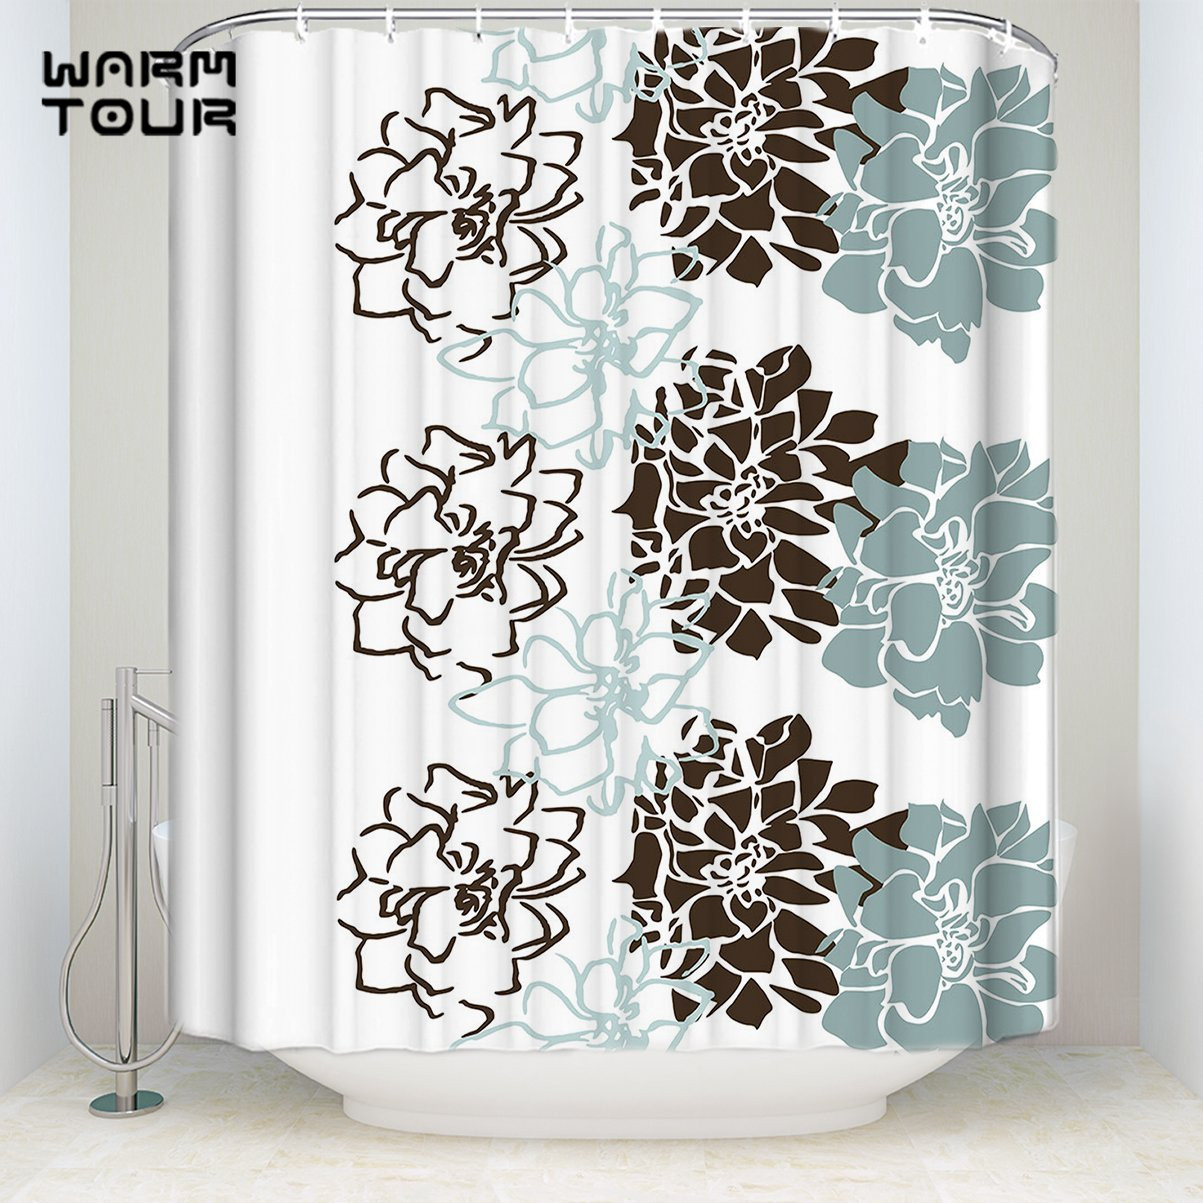 Us 17 38 25 Off Bath Shower Curtains Geometric Flowers Blue Brown White Welcome Mildew Resistant Bathroom Decor Sets With Hooks In